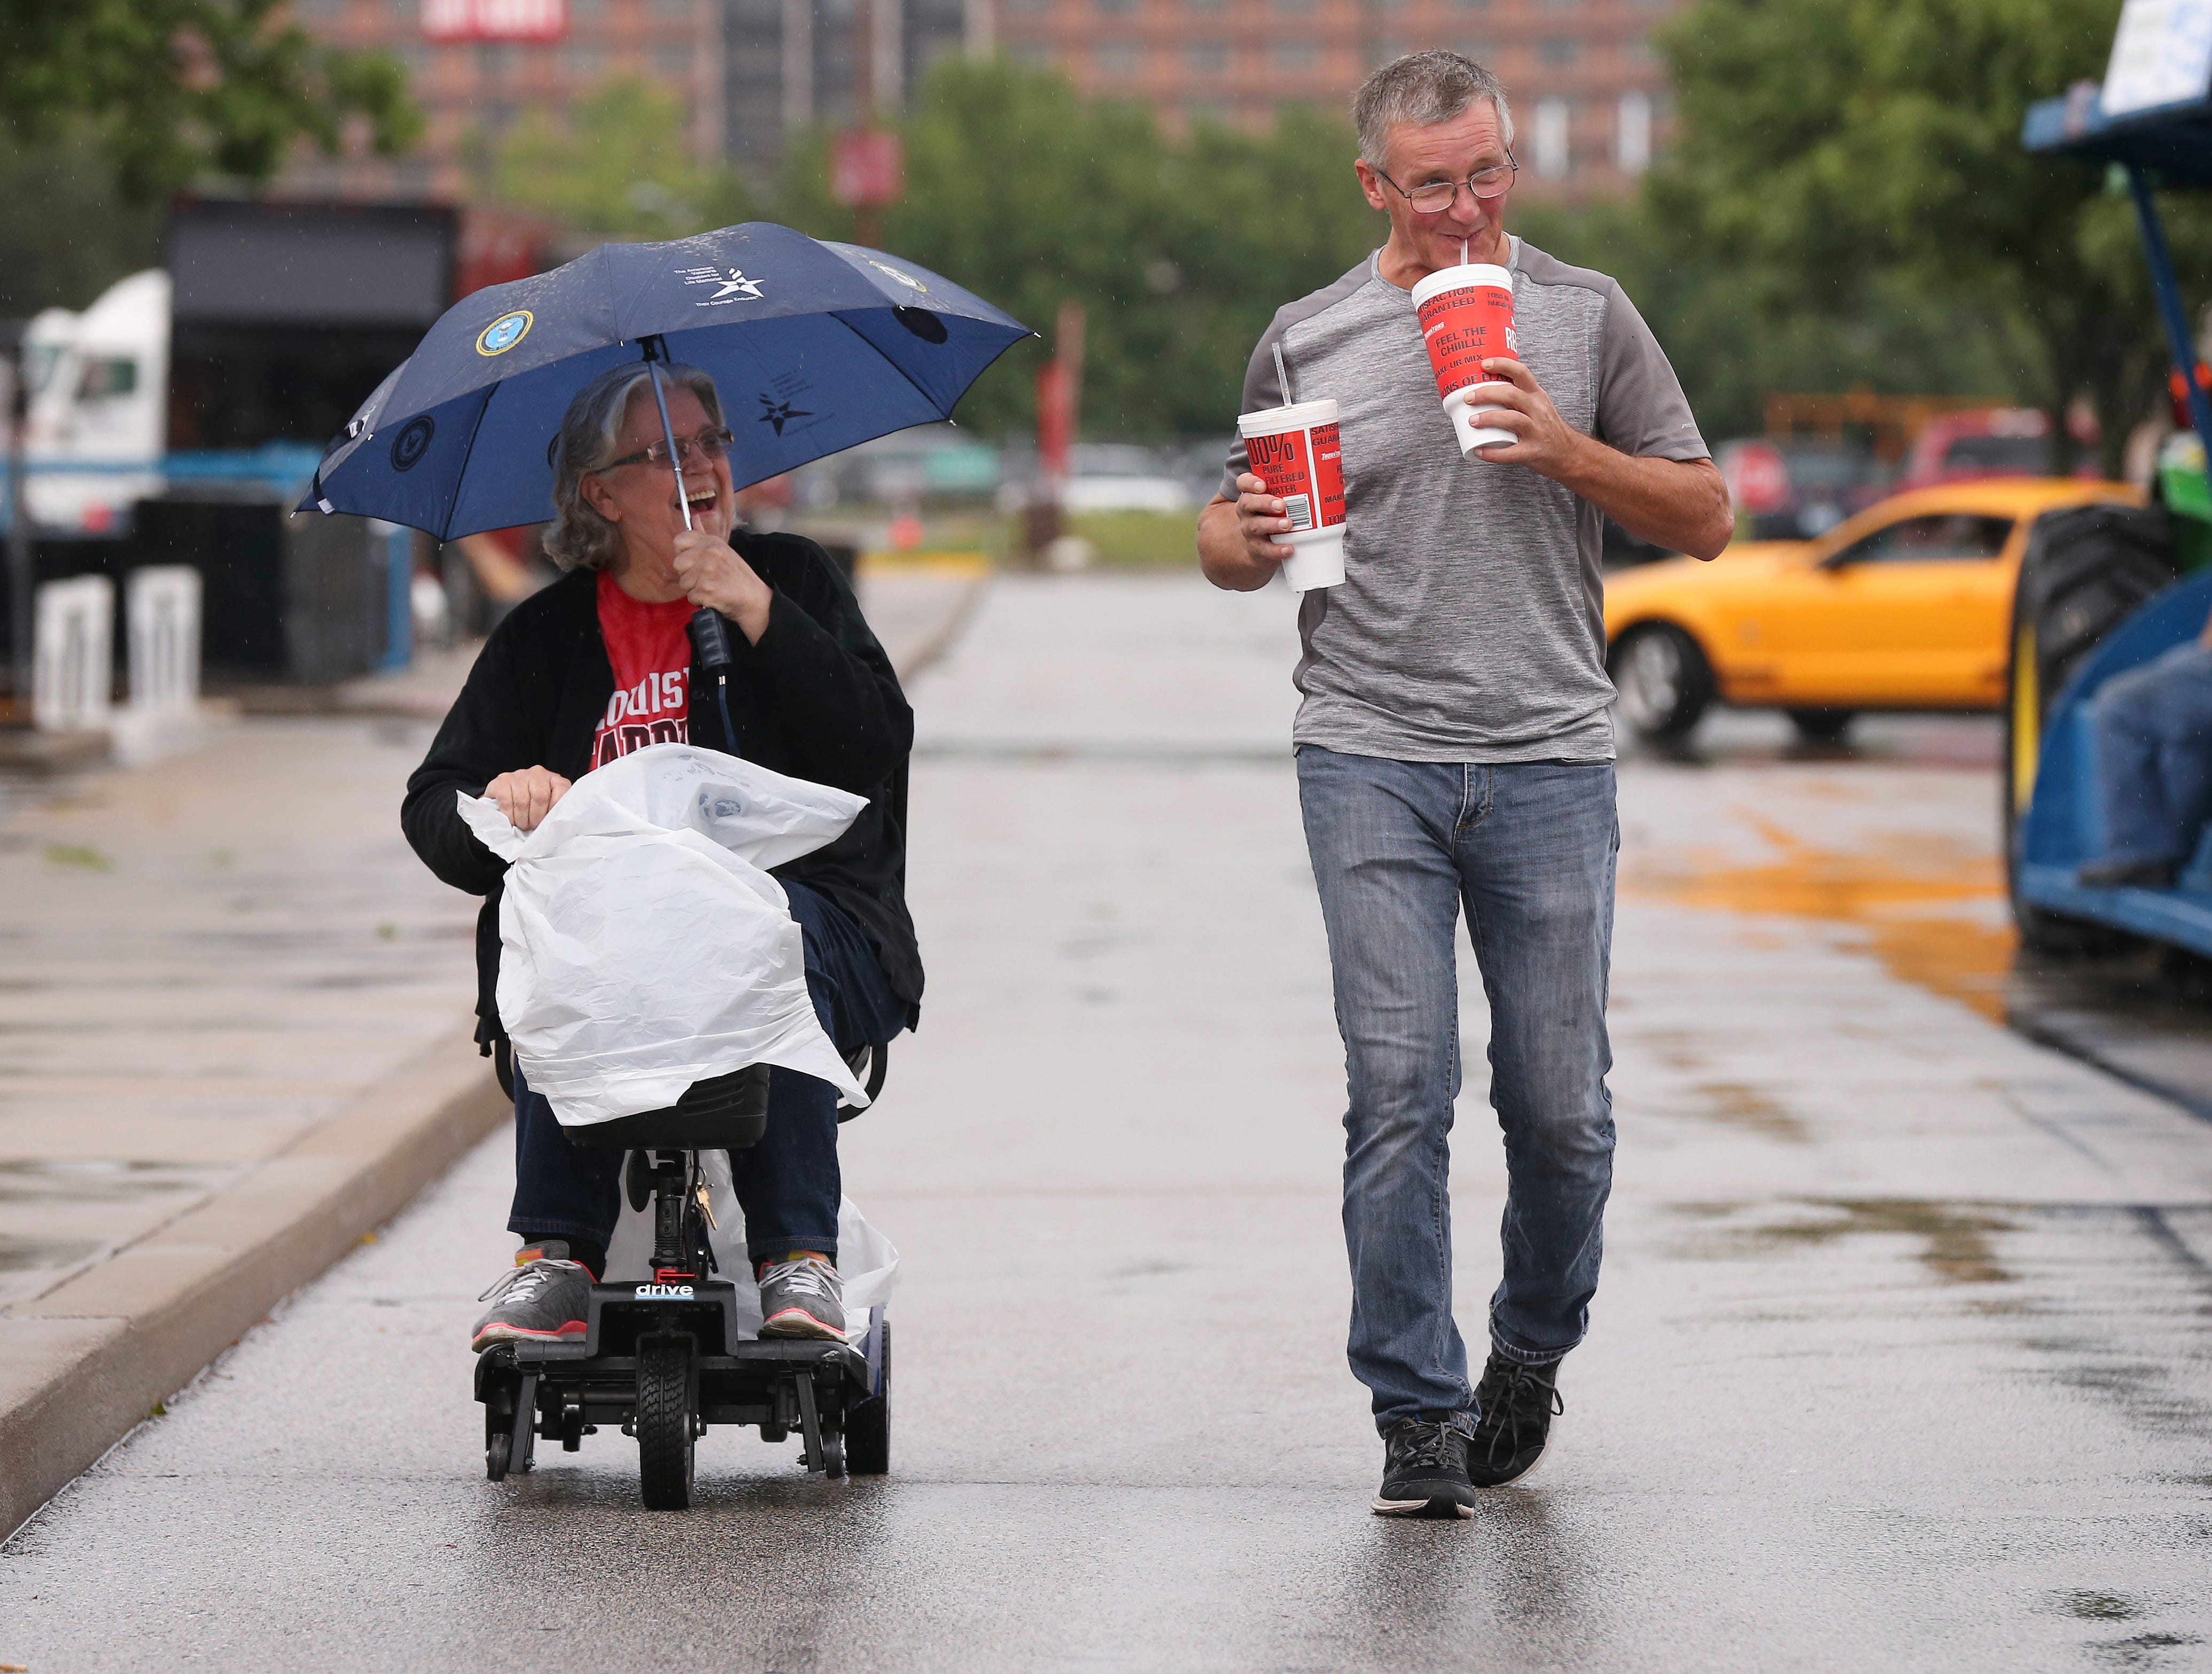 Pat Reynolds, left, used a motorized scooter as she and her son Kevin Anderson arrived in the rain on the first day of the Kentucky State Fair.Aug. 16, 2018